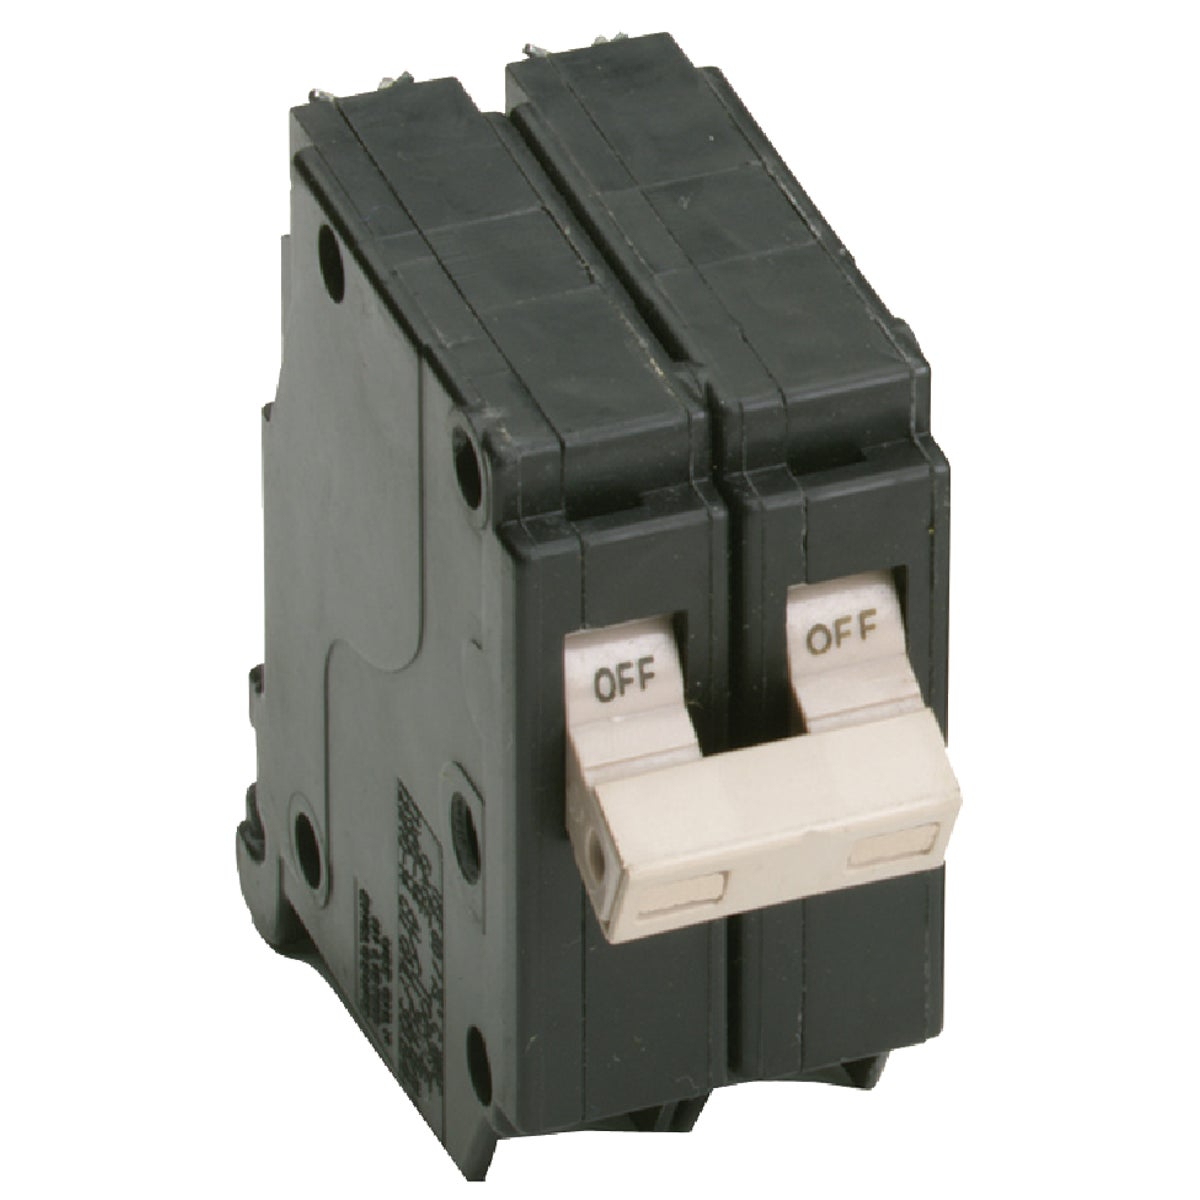 60A 2P CIRCUIT BREAKER - CH260 by Eaton Corporation